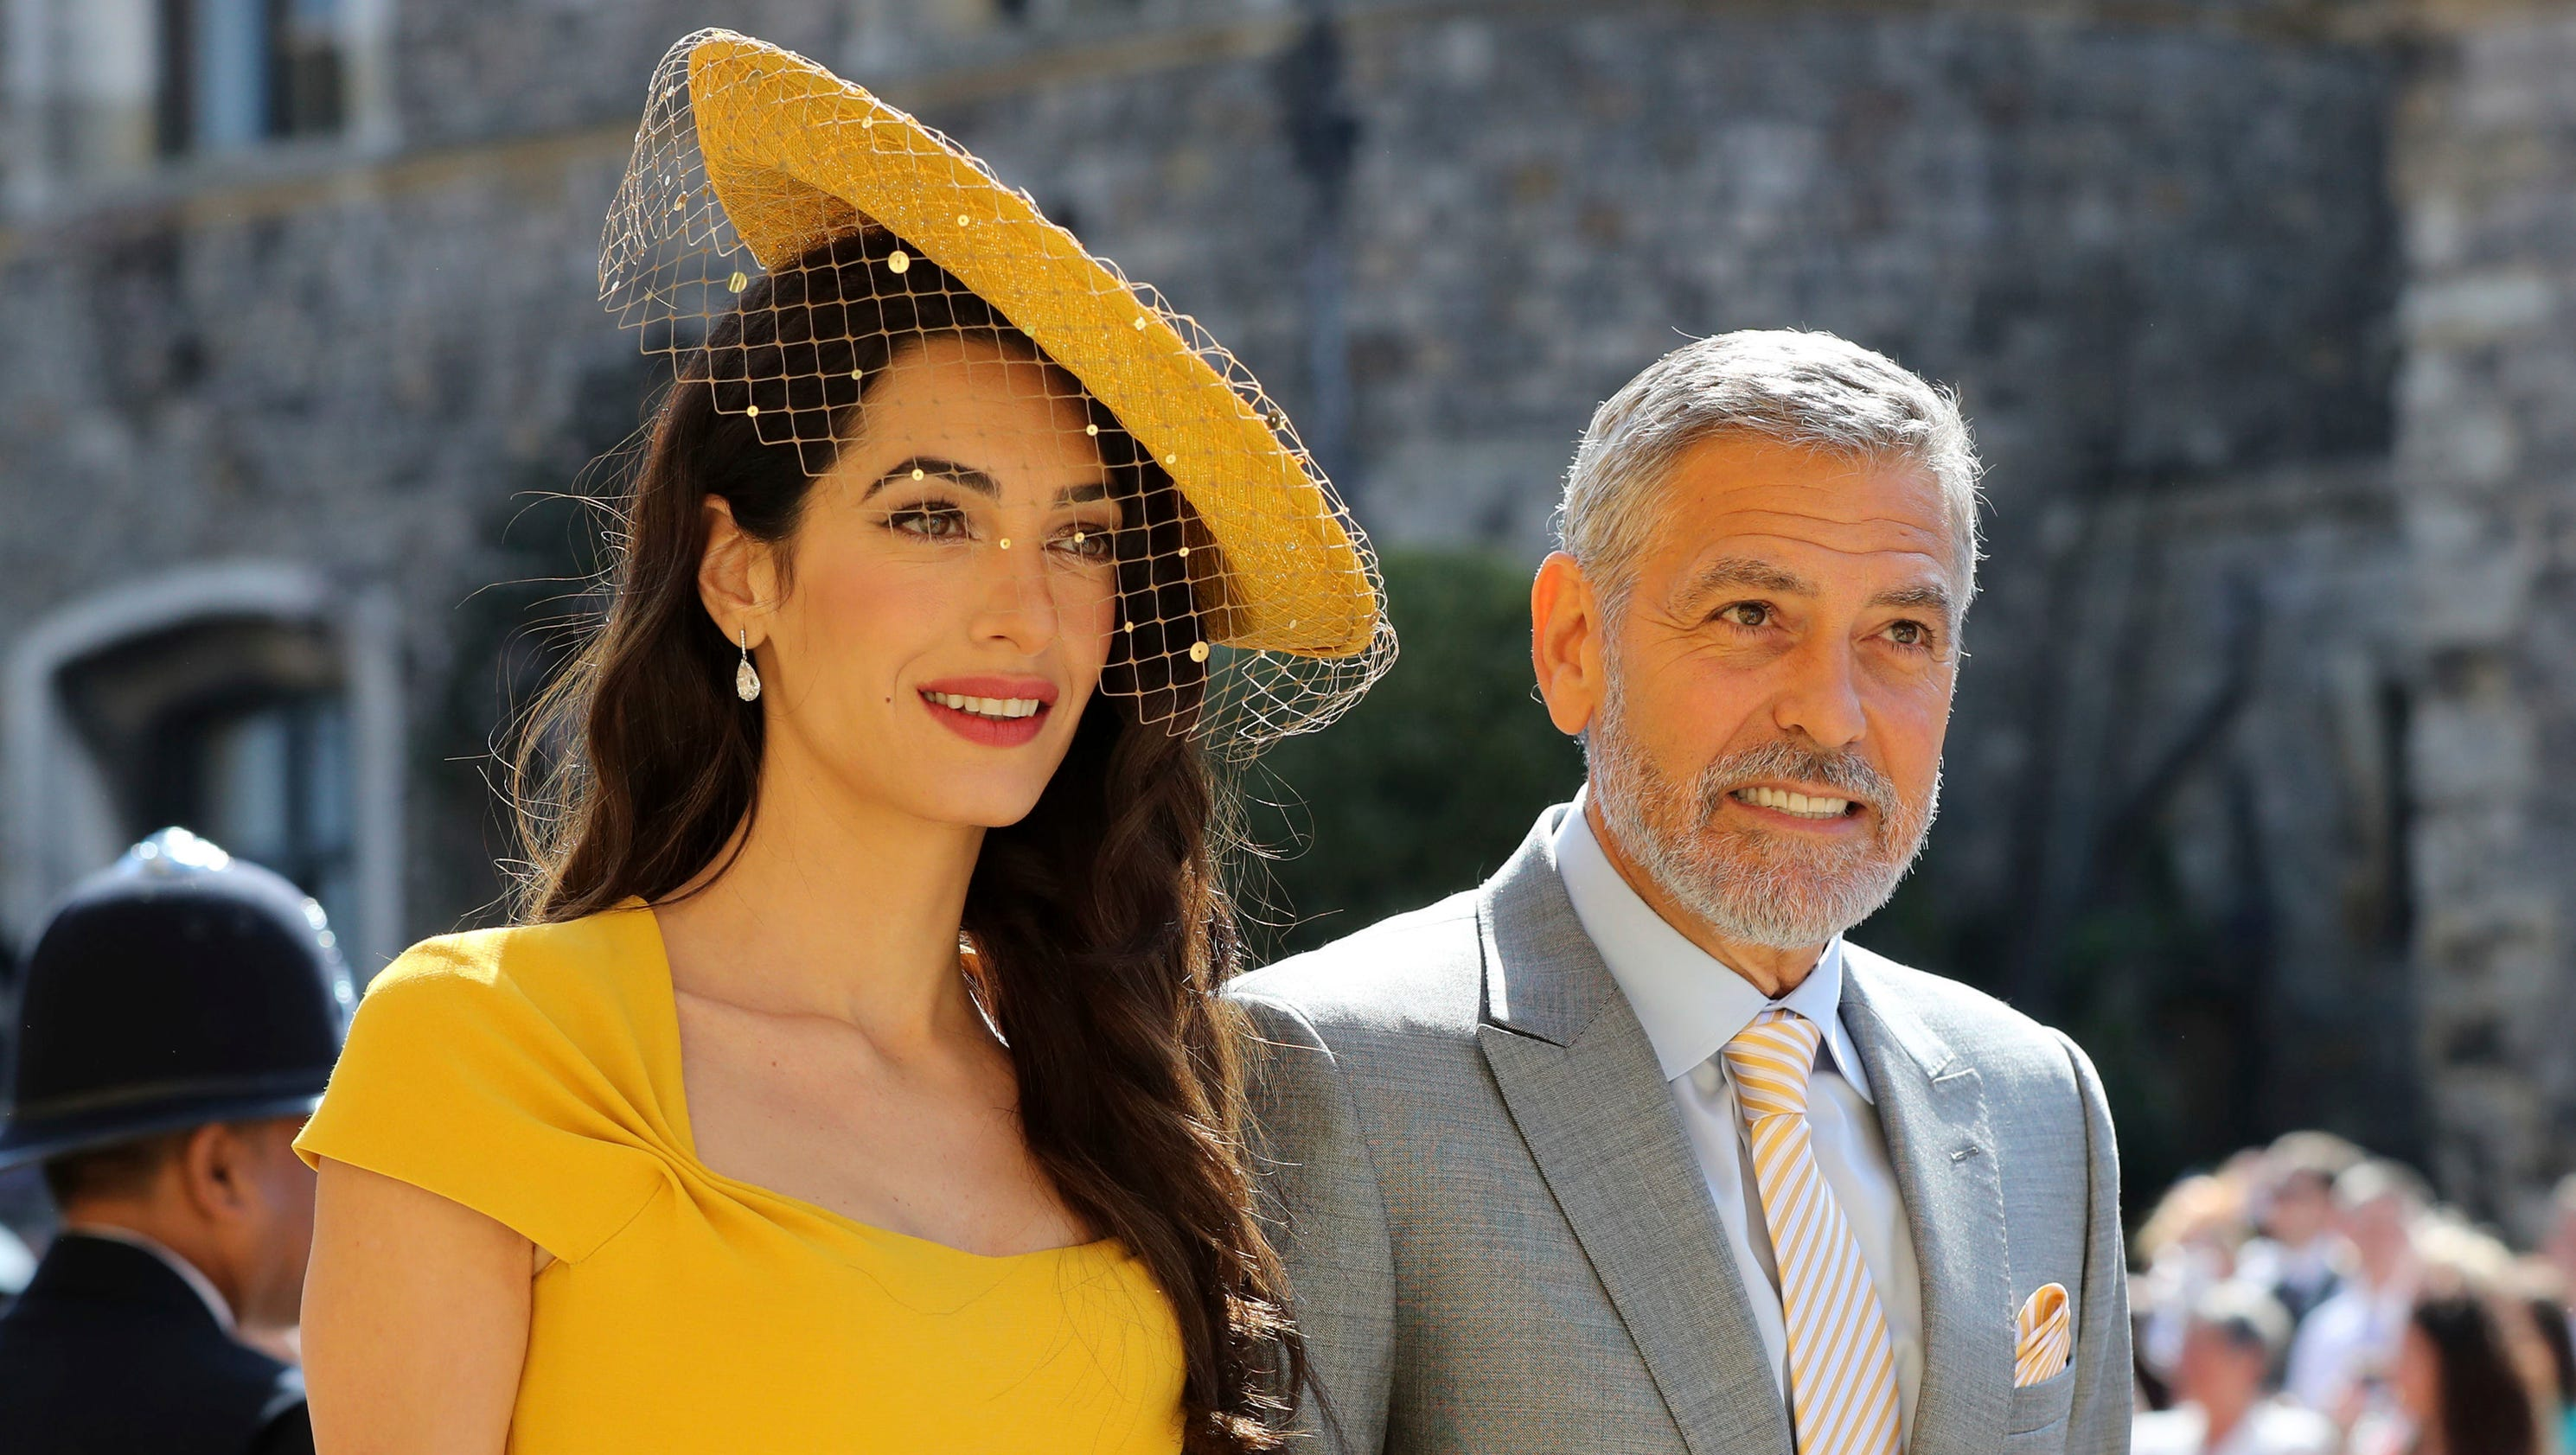 Royal wedding 2018: All the guests who attended